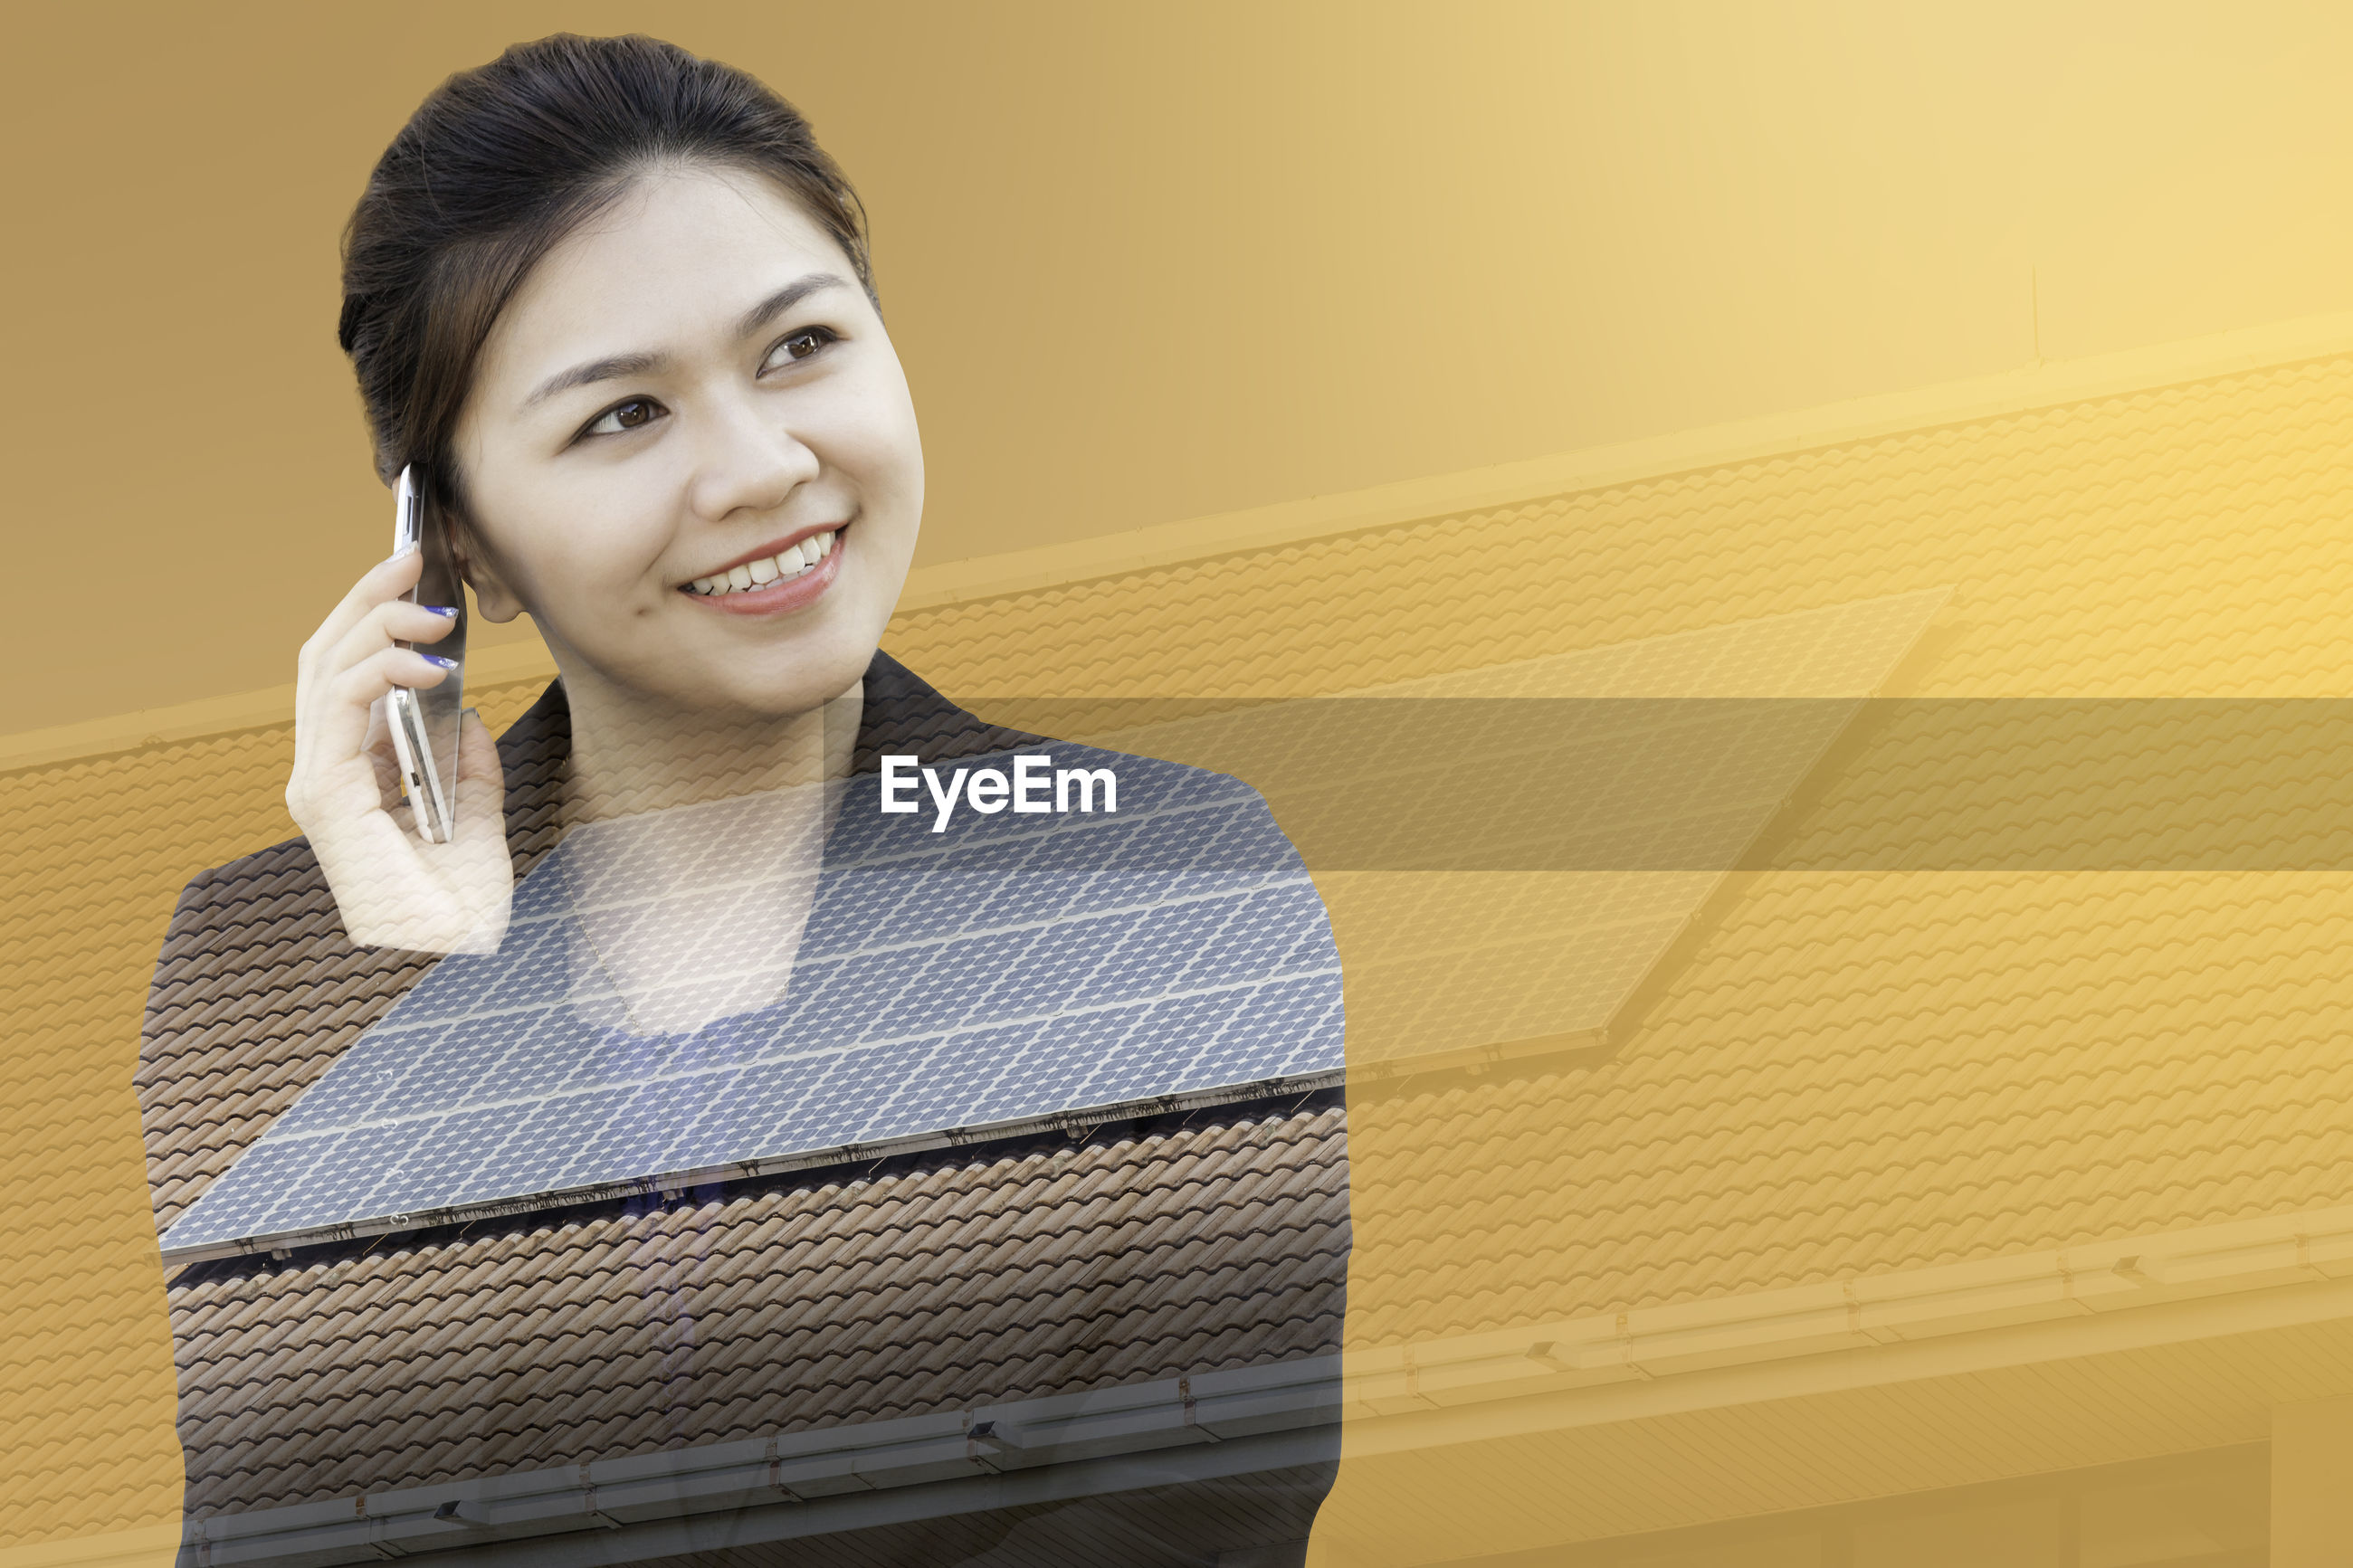 Digital composite image of woman talking on mobile phone and metal